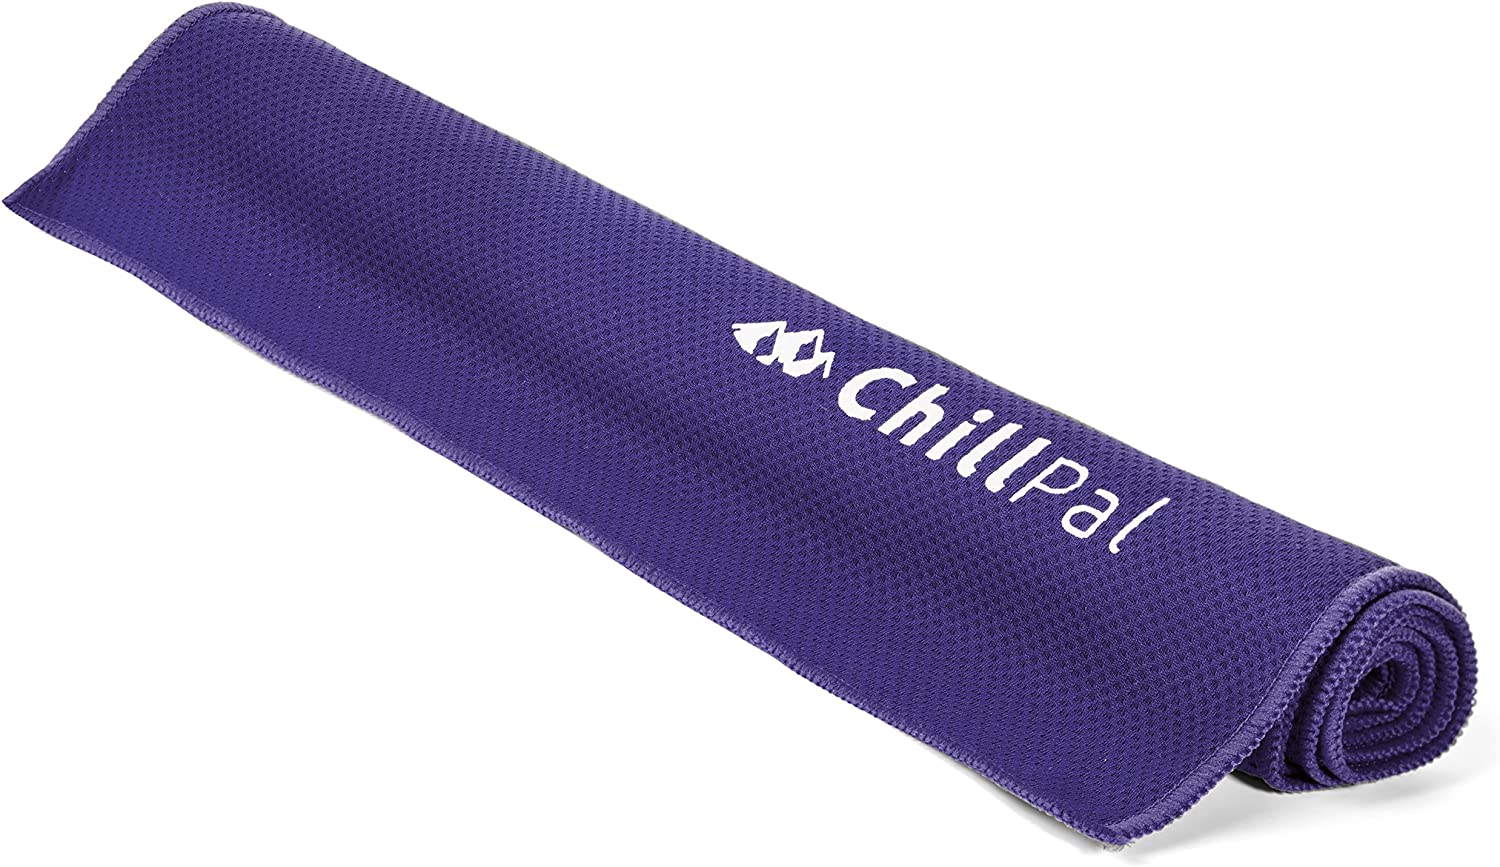 Chill Pal Mesh Cooling Towel (Twilight Purple, 12 x 40 inch)